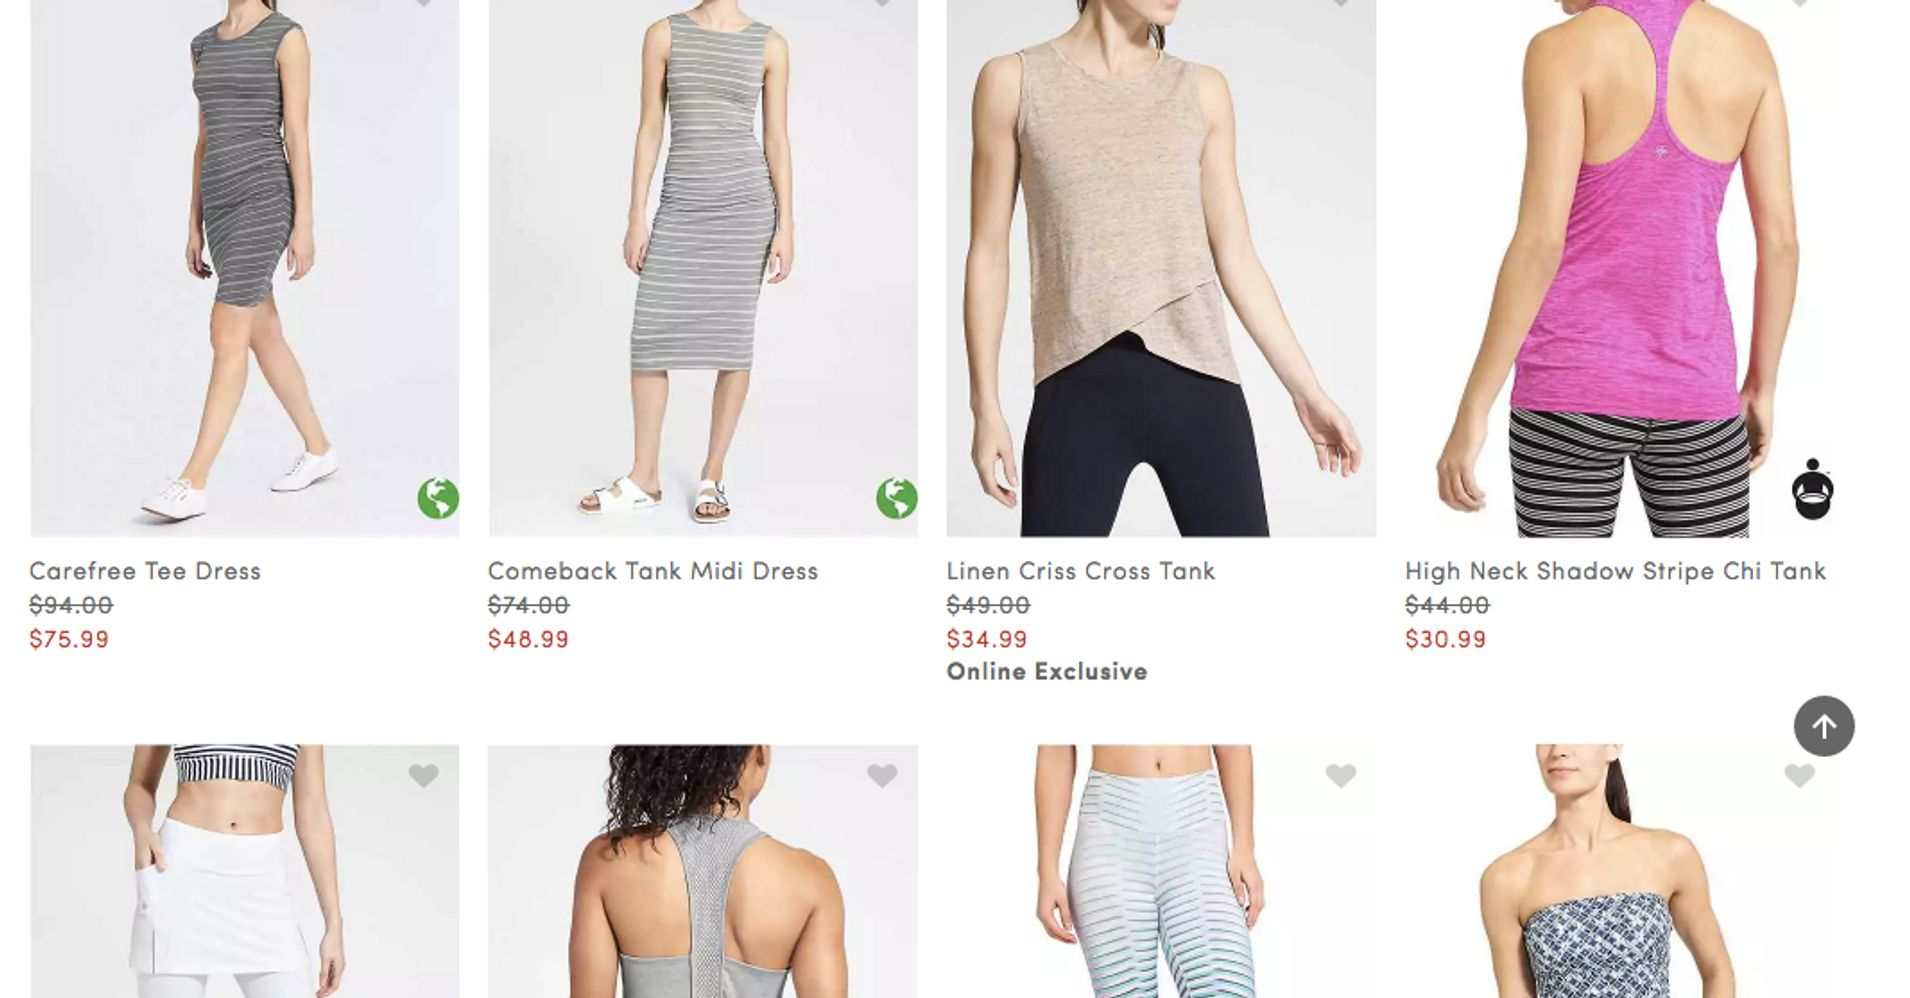 97d2d2ea2d Athleta Vows 'Meaningful' Change After Being Called Out For Showing Plus  Clothes On Straight-Size Models | HuffPost Life